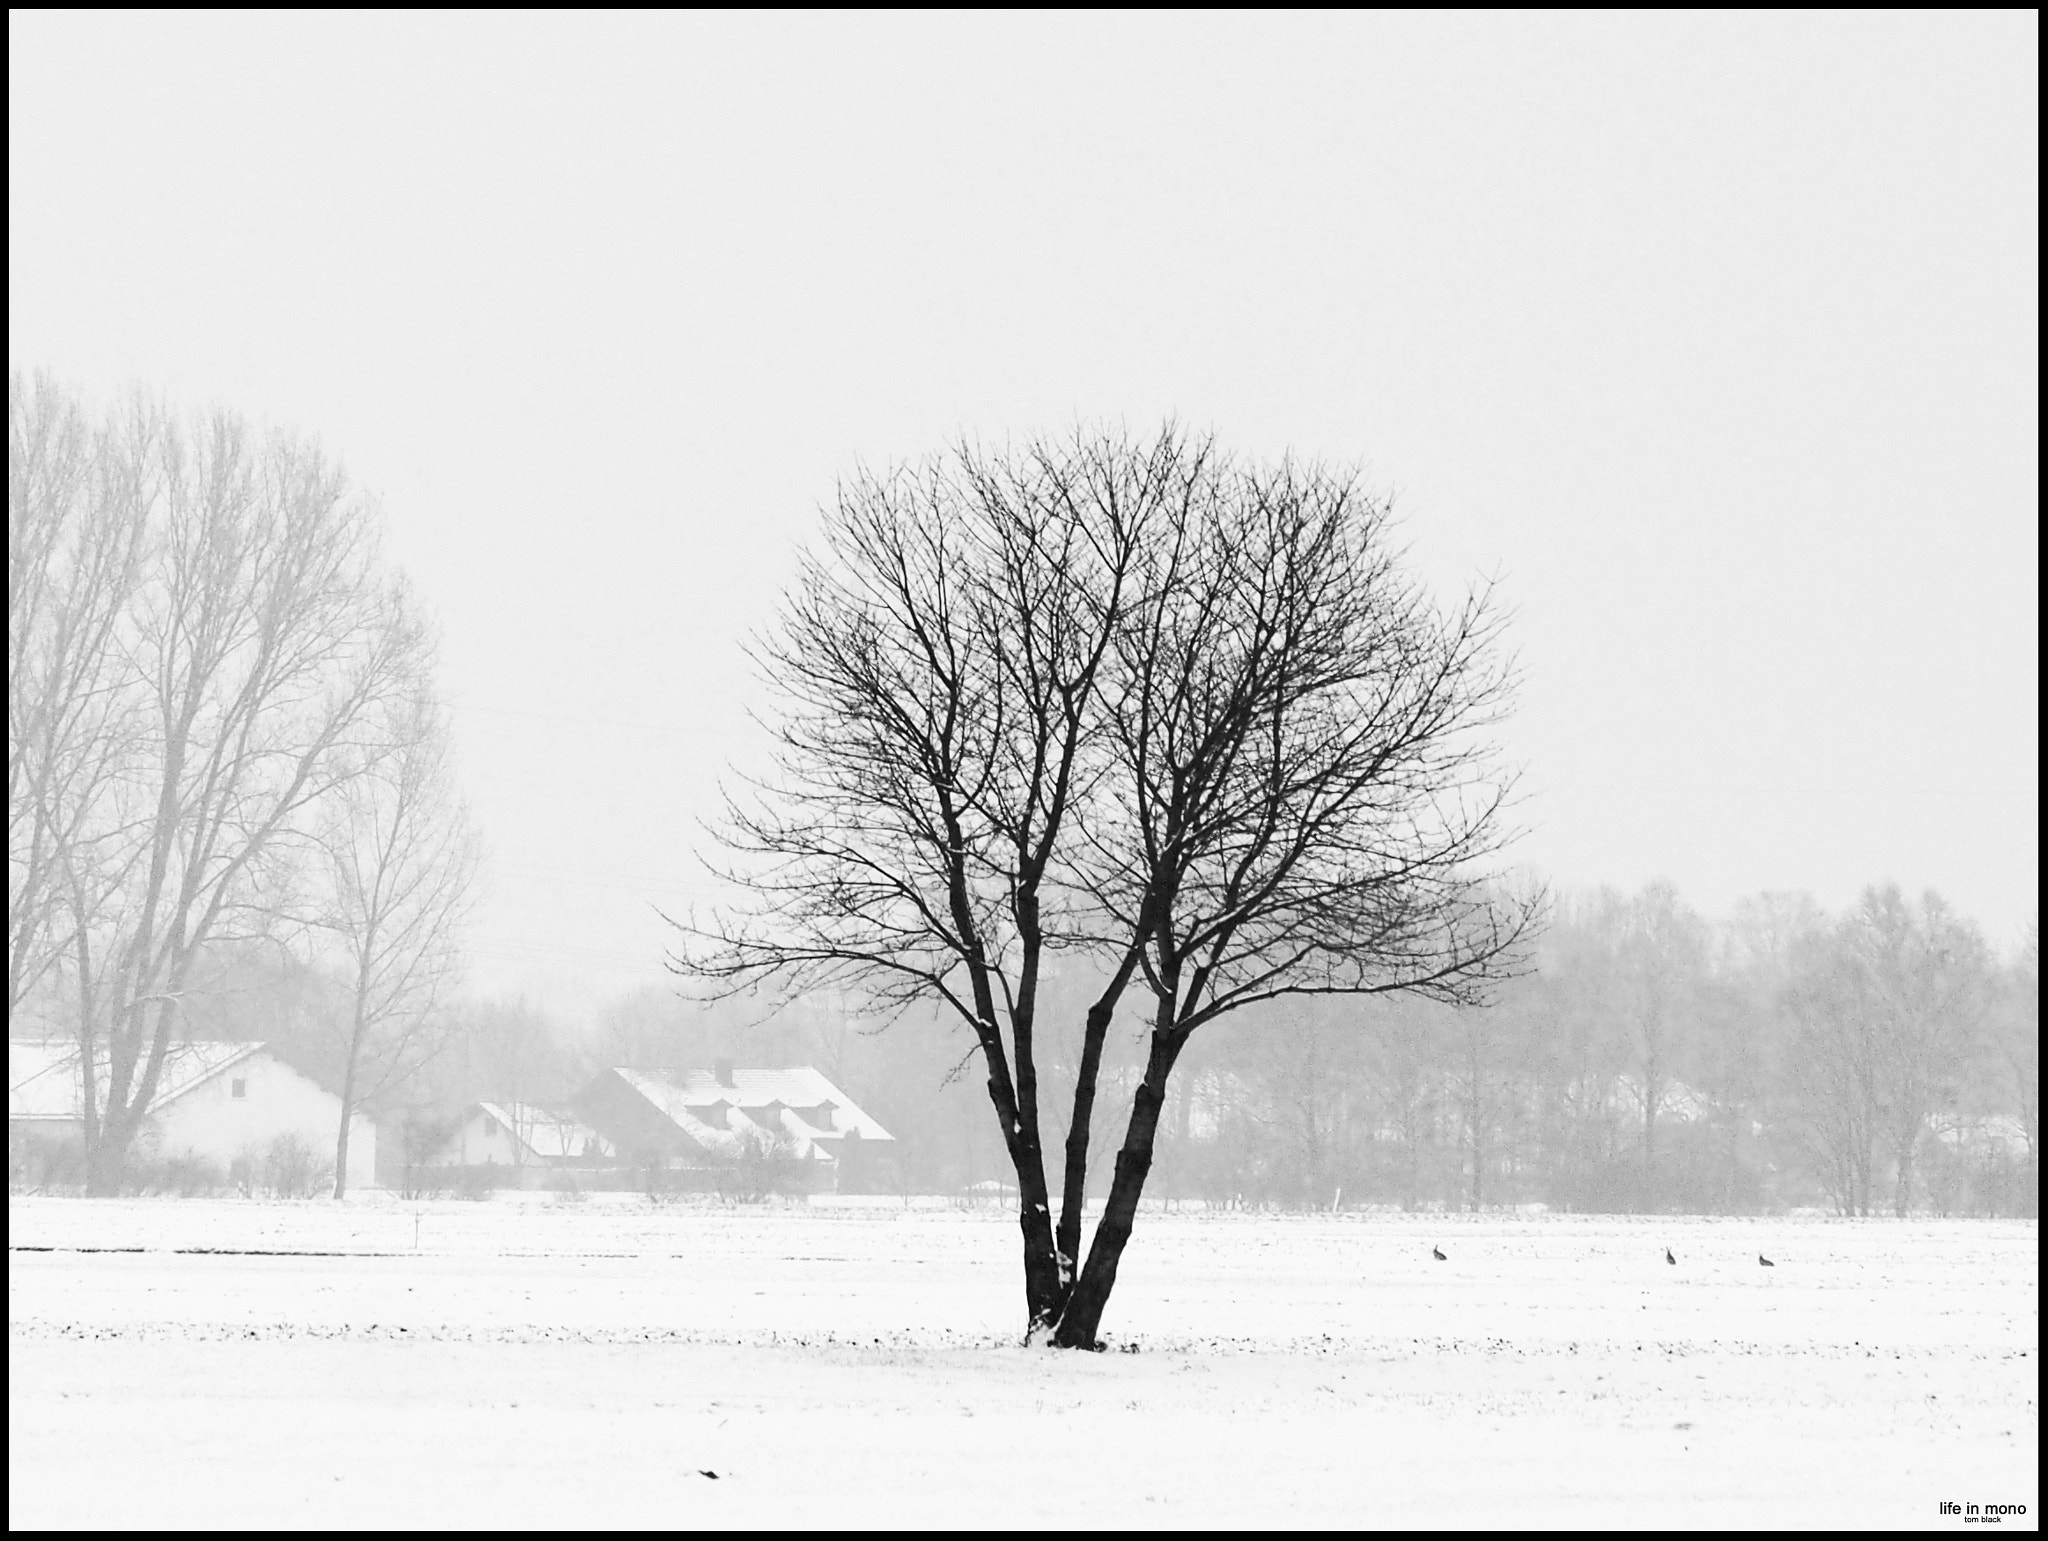 Photograph lost & alone [1] by Tom Ba on 500px